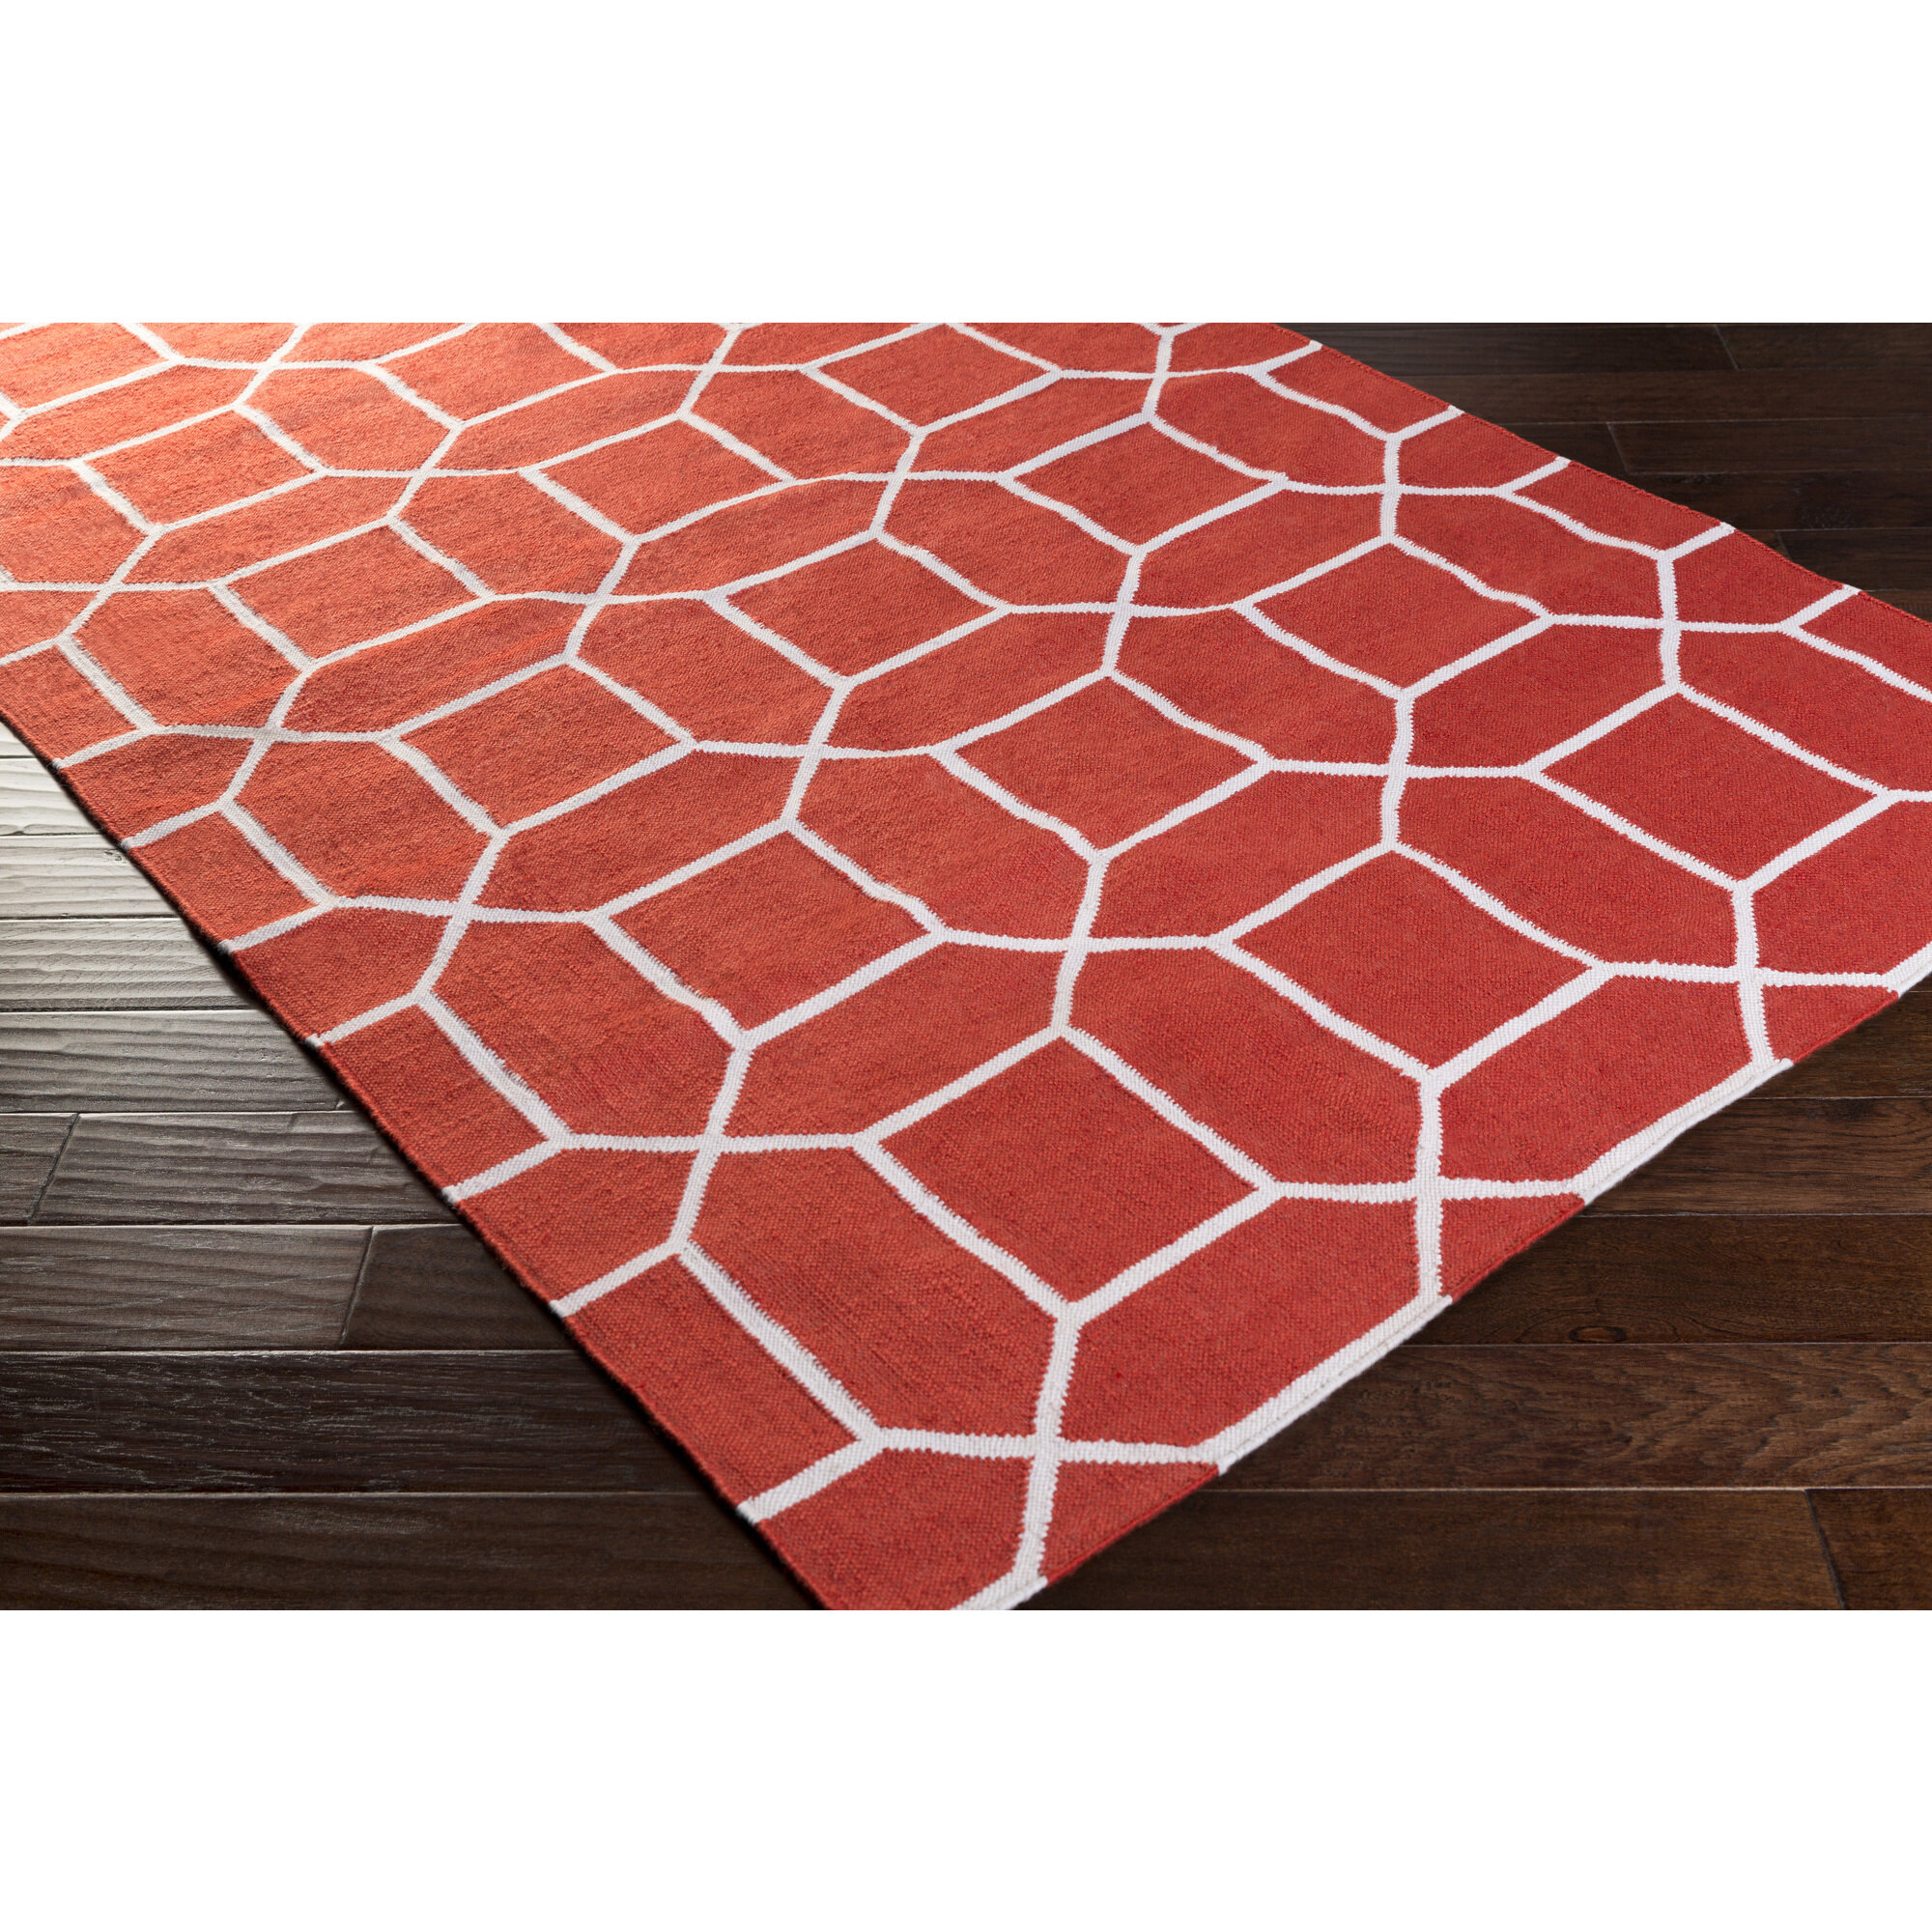 Charlton Home Larksville Geometric Handwoven Red Cream Indoor Outdoor Area Rug Wayfair